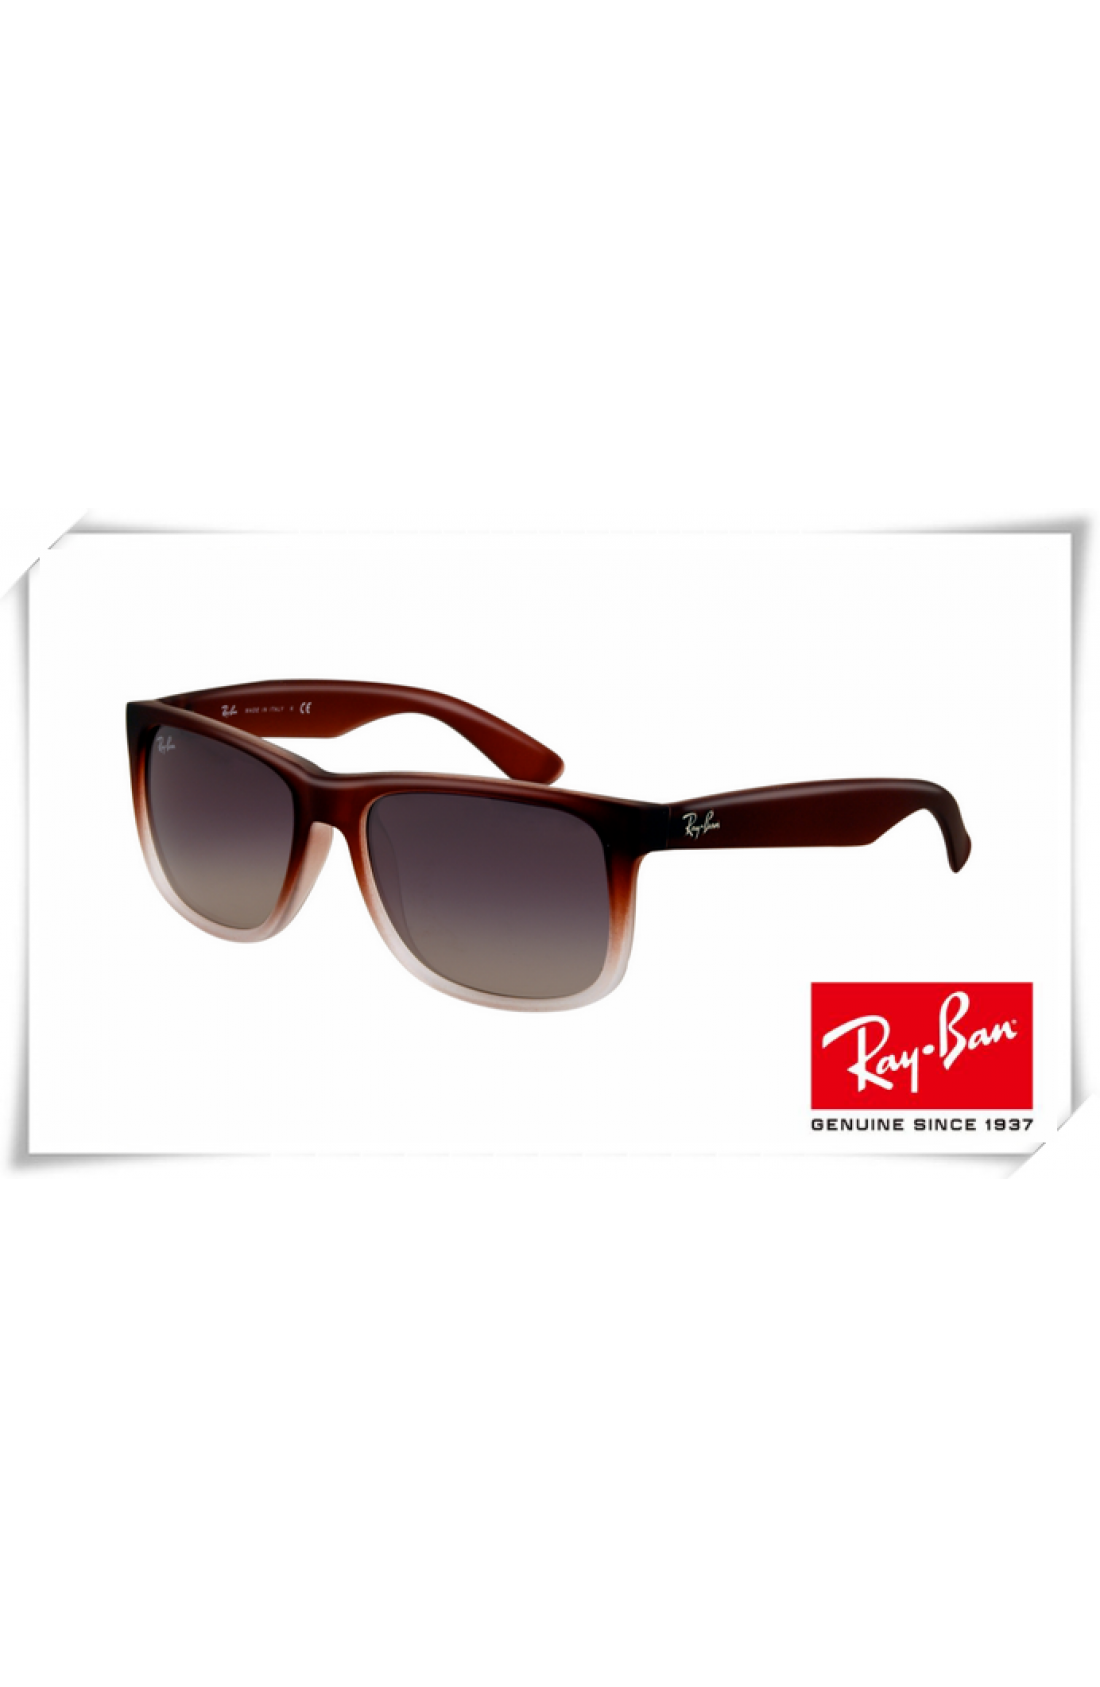 93a283a74d0e3 Cheap Fake Ray Ban RB4165 Justin Sunglasses Rubber Brown Gradient ...